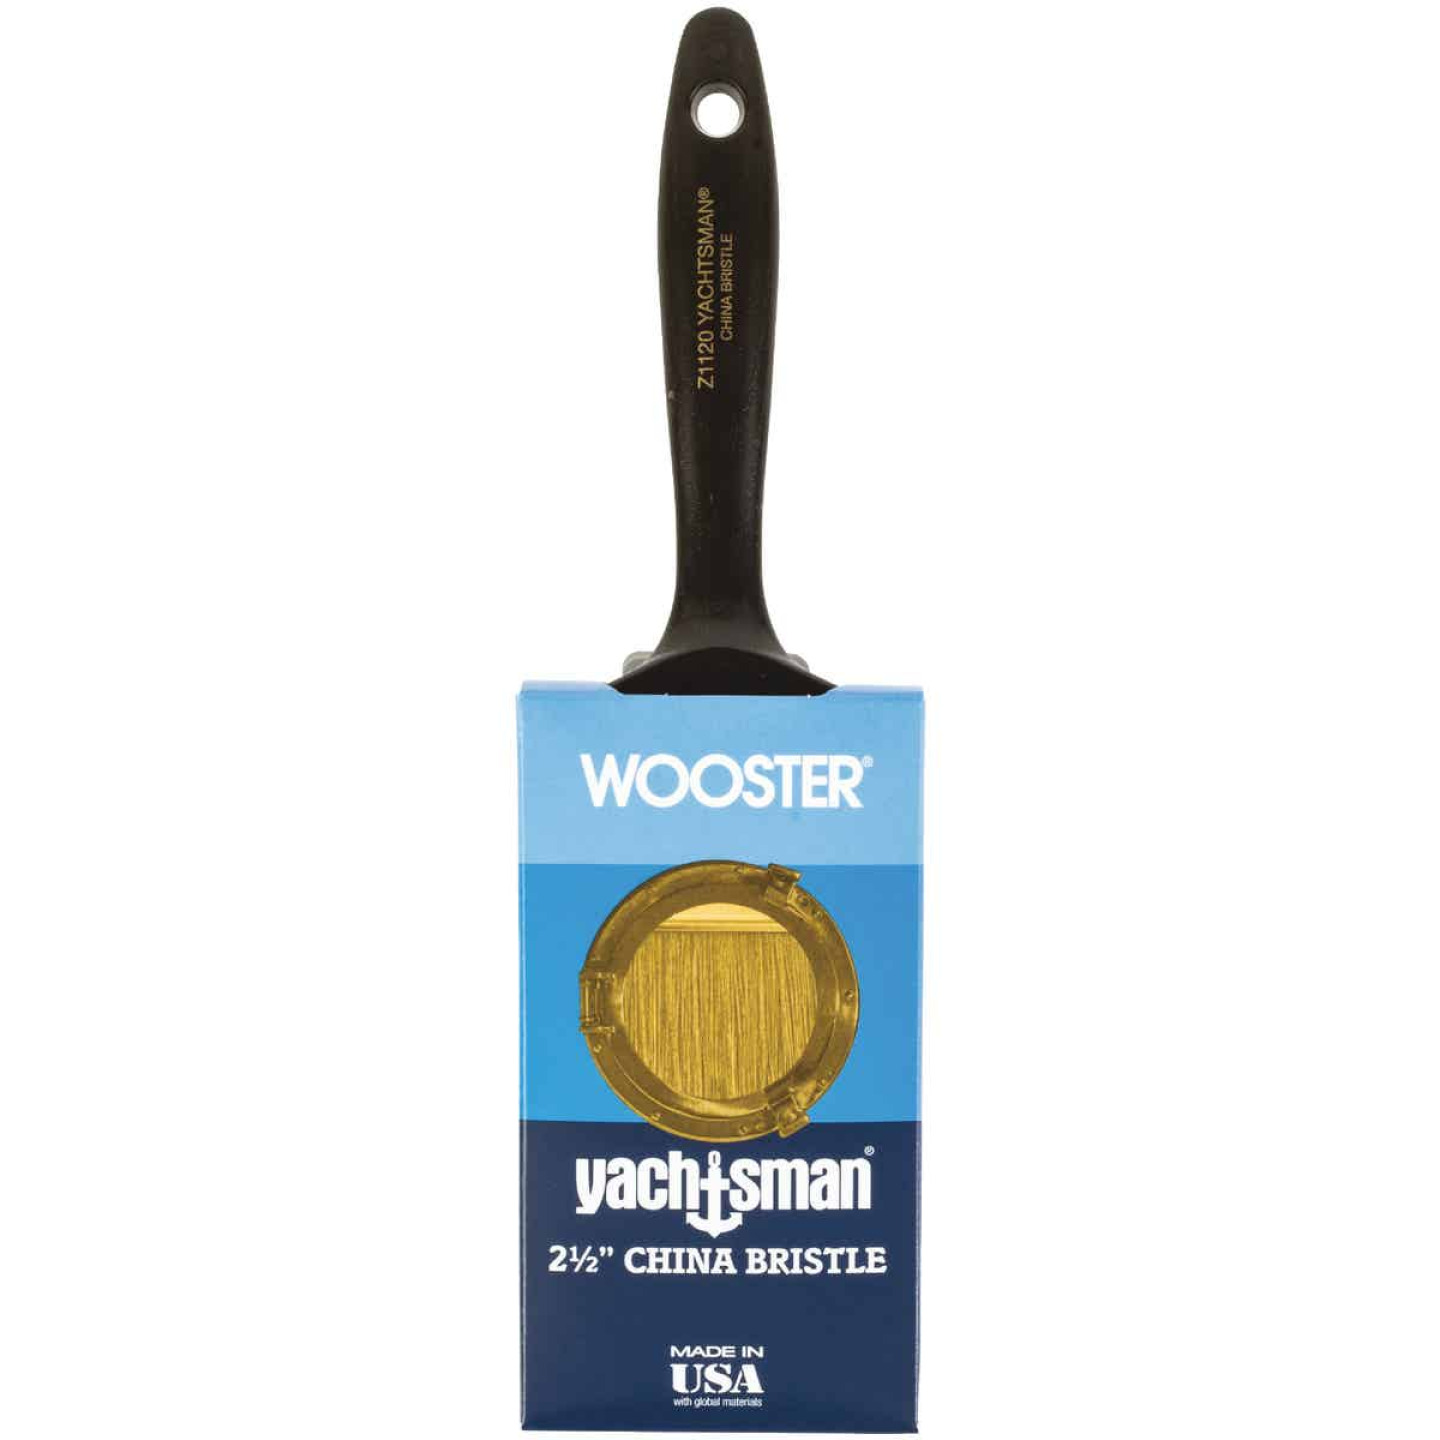 Wooster Yachtsman Varnish 2-1/2 In. Flat Paint Brush Image 1